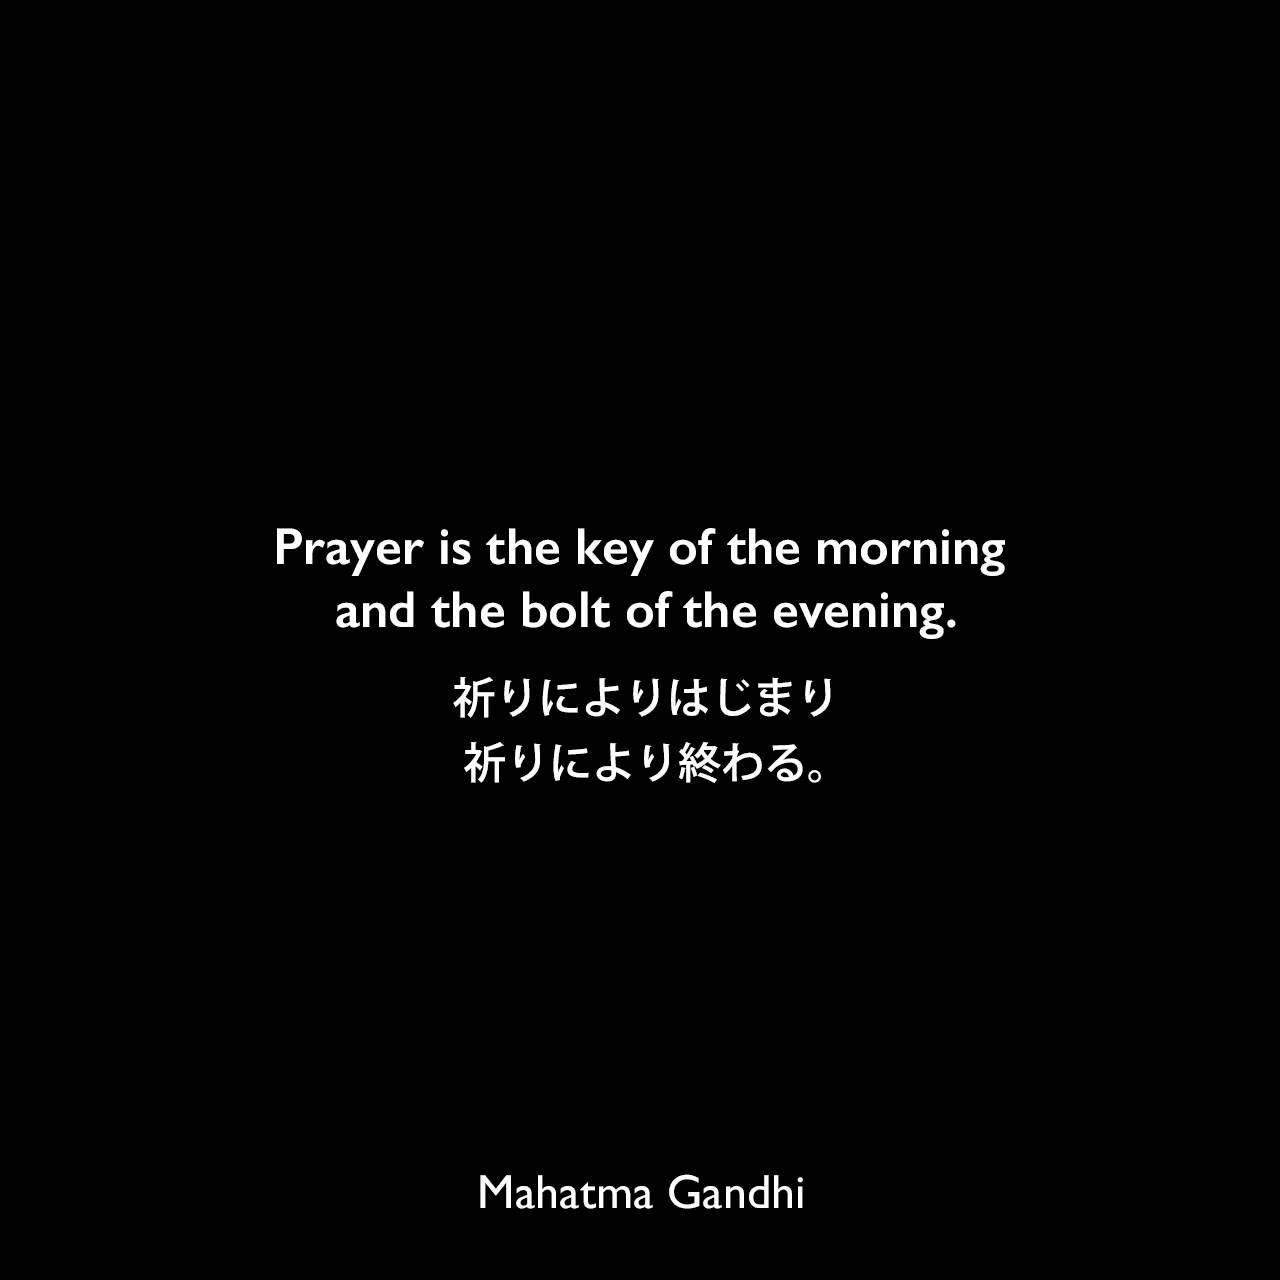 Prayer is the key of the morning and the bolt of the evening.祈りによりはじまり、祈りにより終わる。Mahatma Gandhi